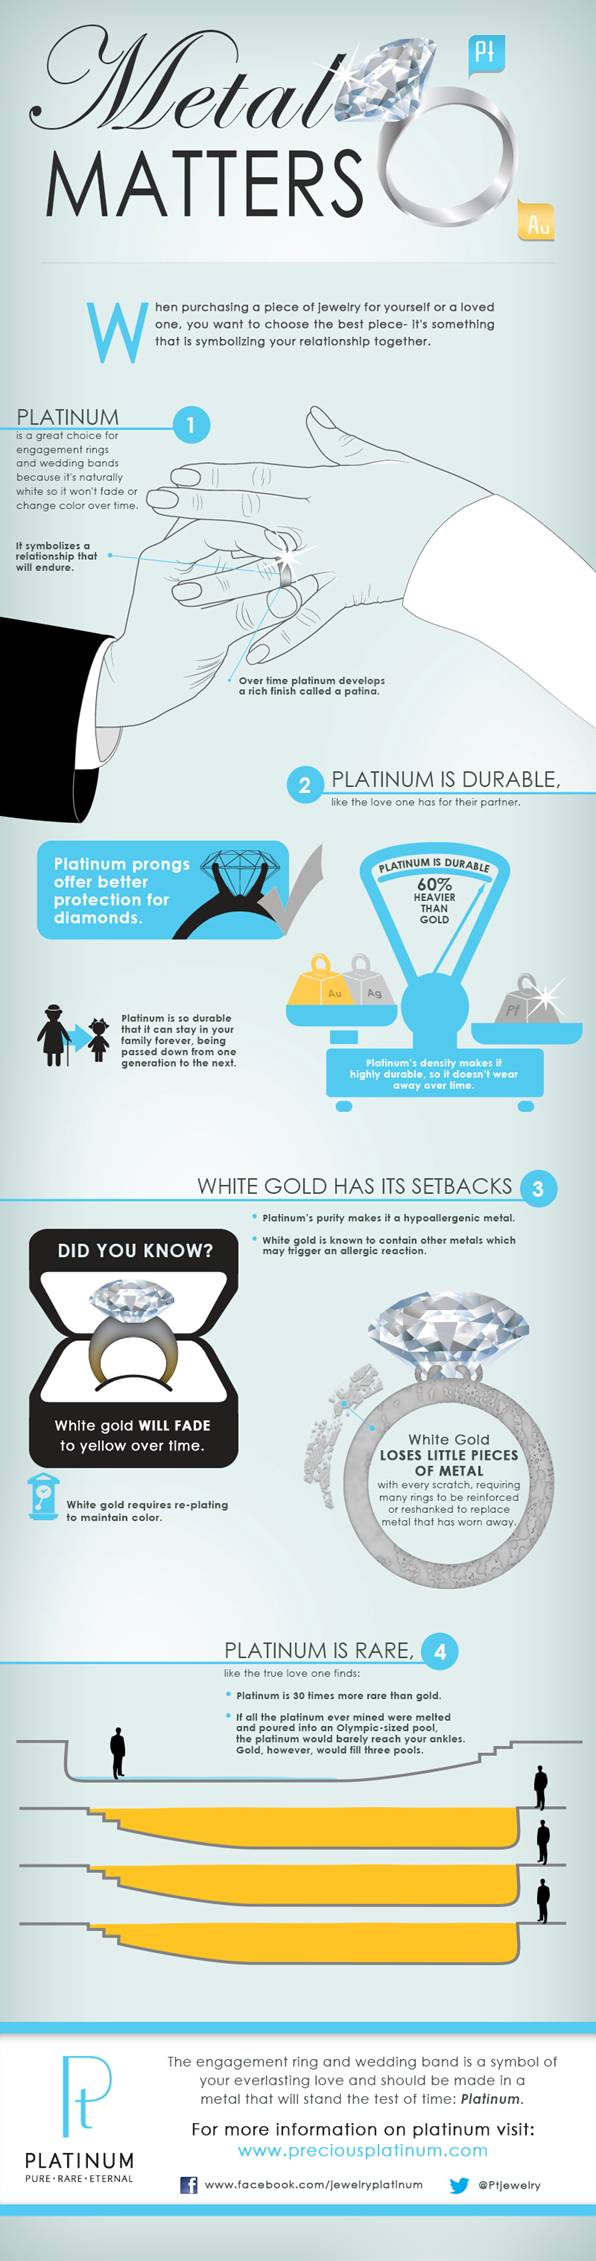 Difference between platinum & white gold by Jewelove